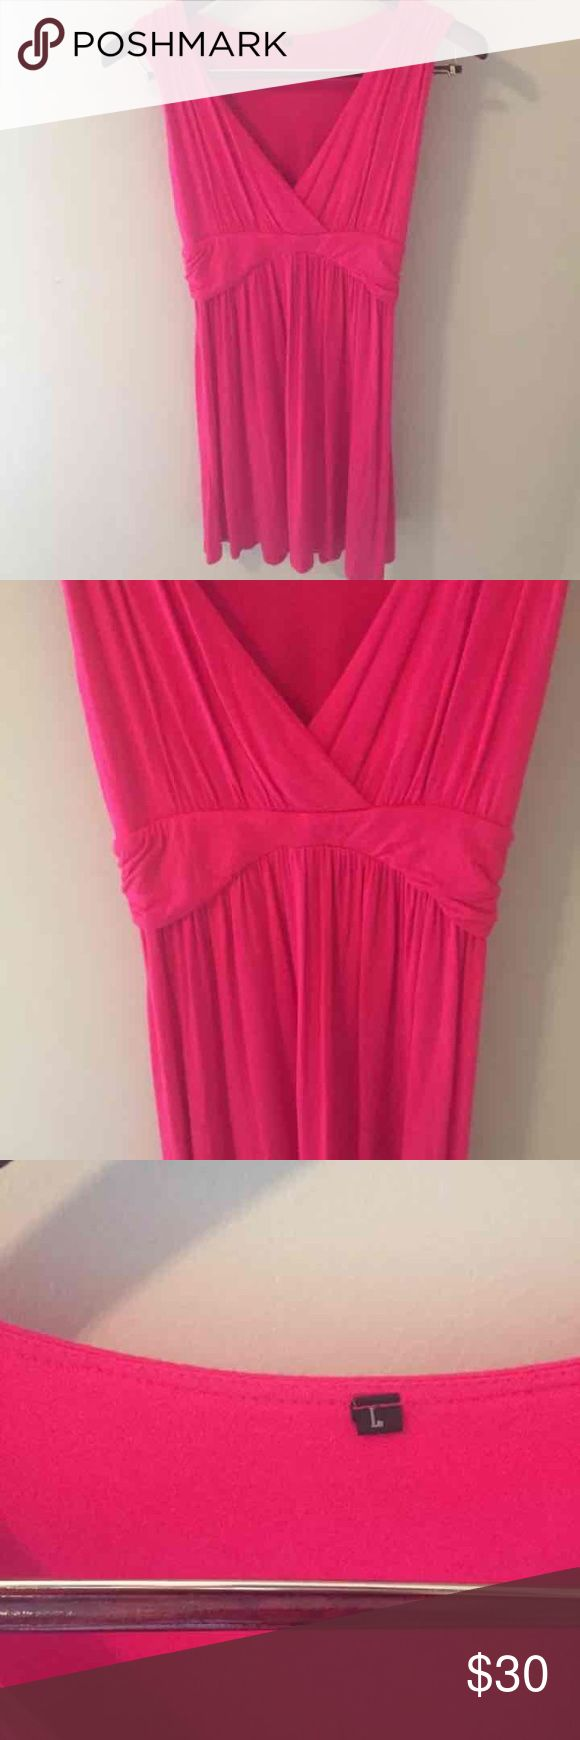 Bright Pink Sundress sz. Large. Casual Bright Pink Sundress sz. Large. By Charm Your Prince. Beach Casual Coverup Dress Charm Your Prince Dresses Midi